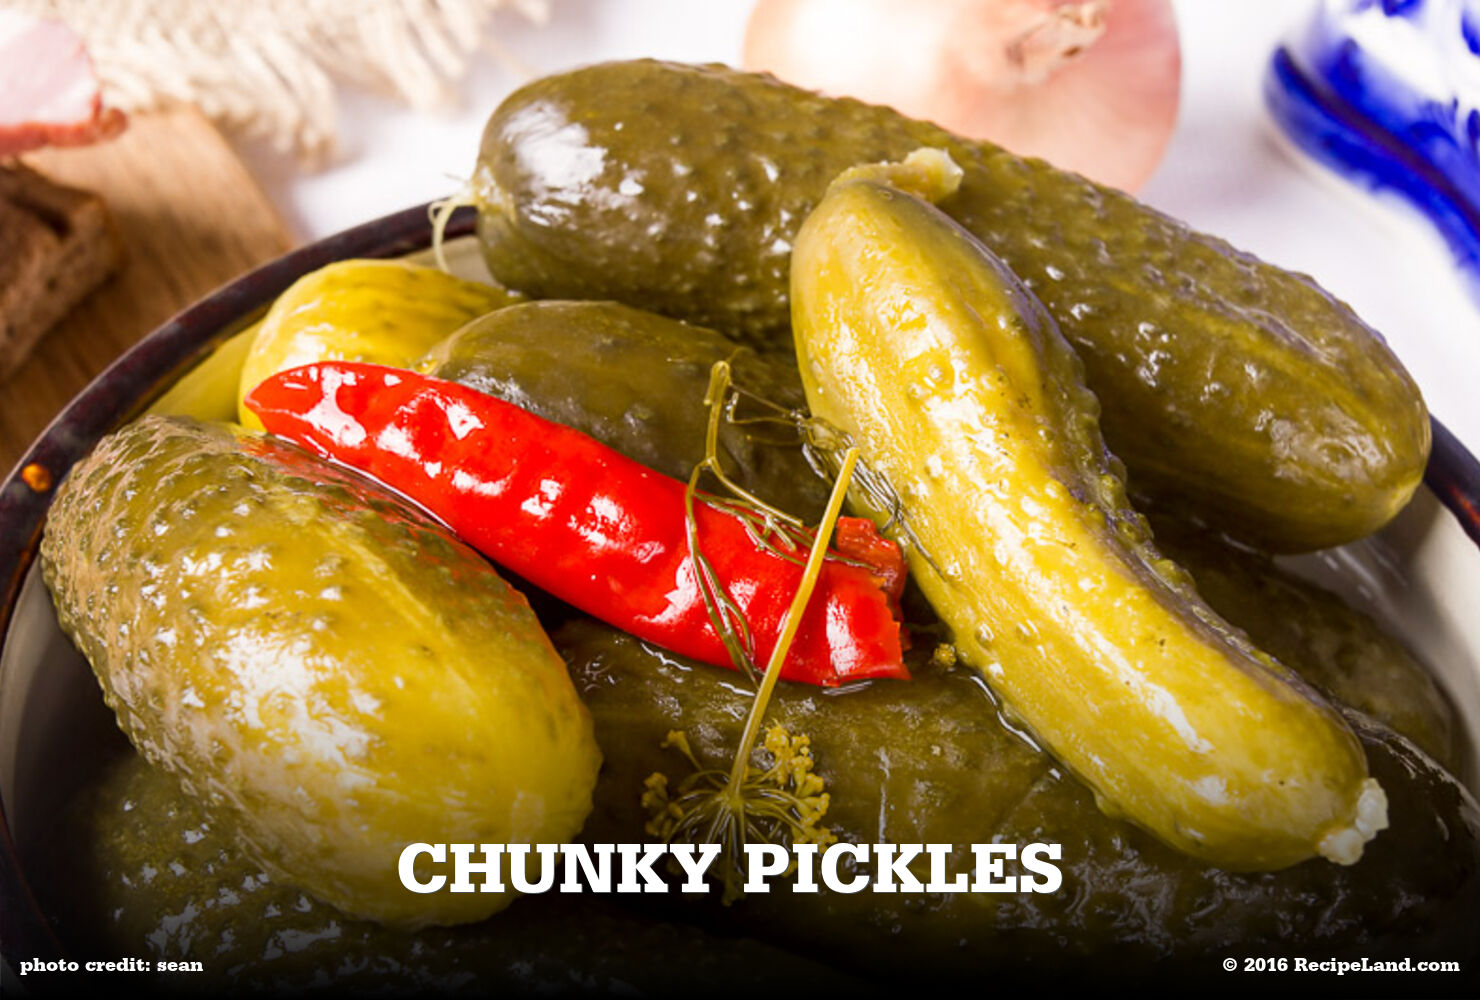 Chunky Pickles